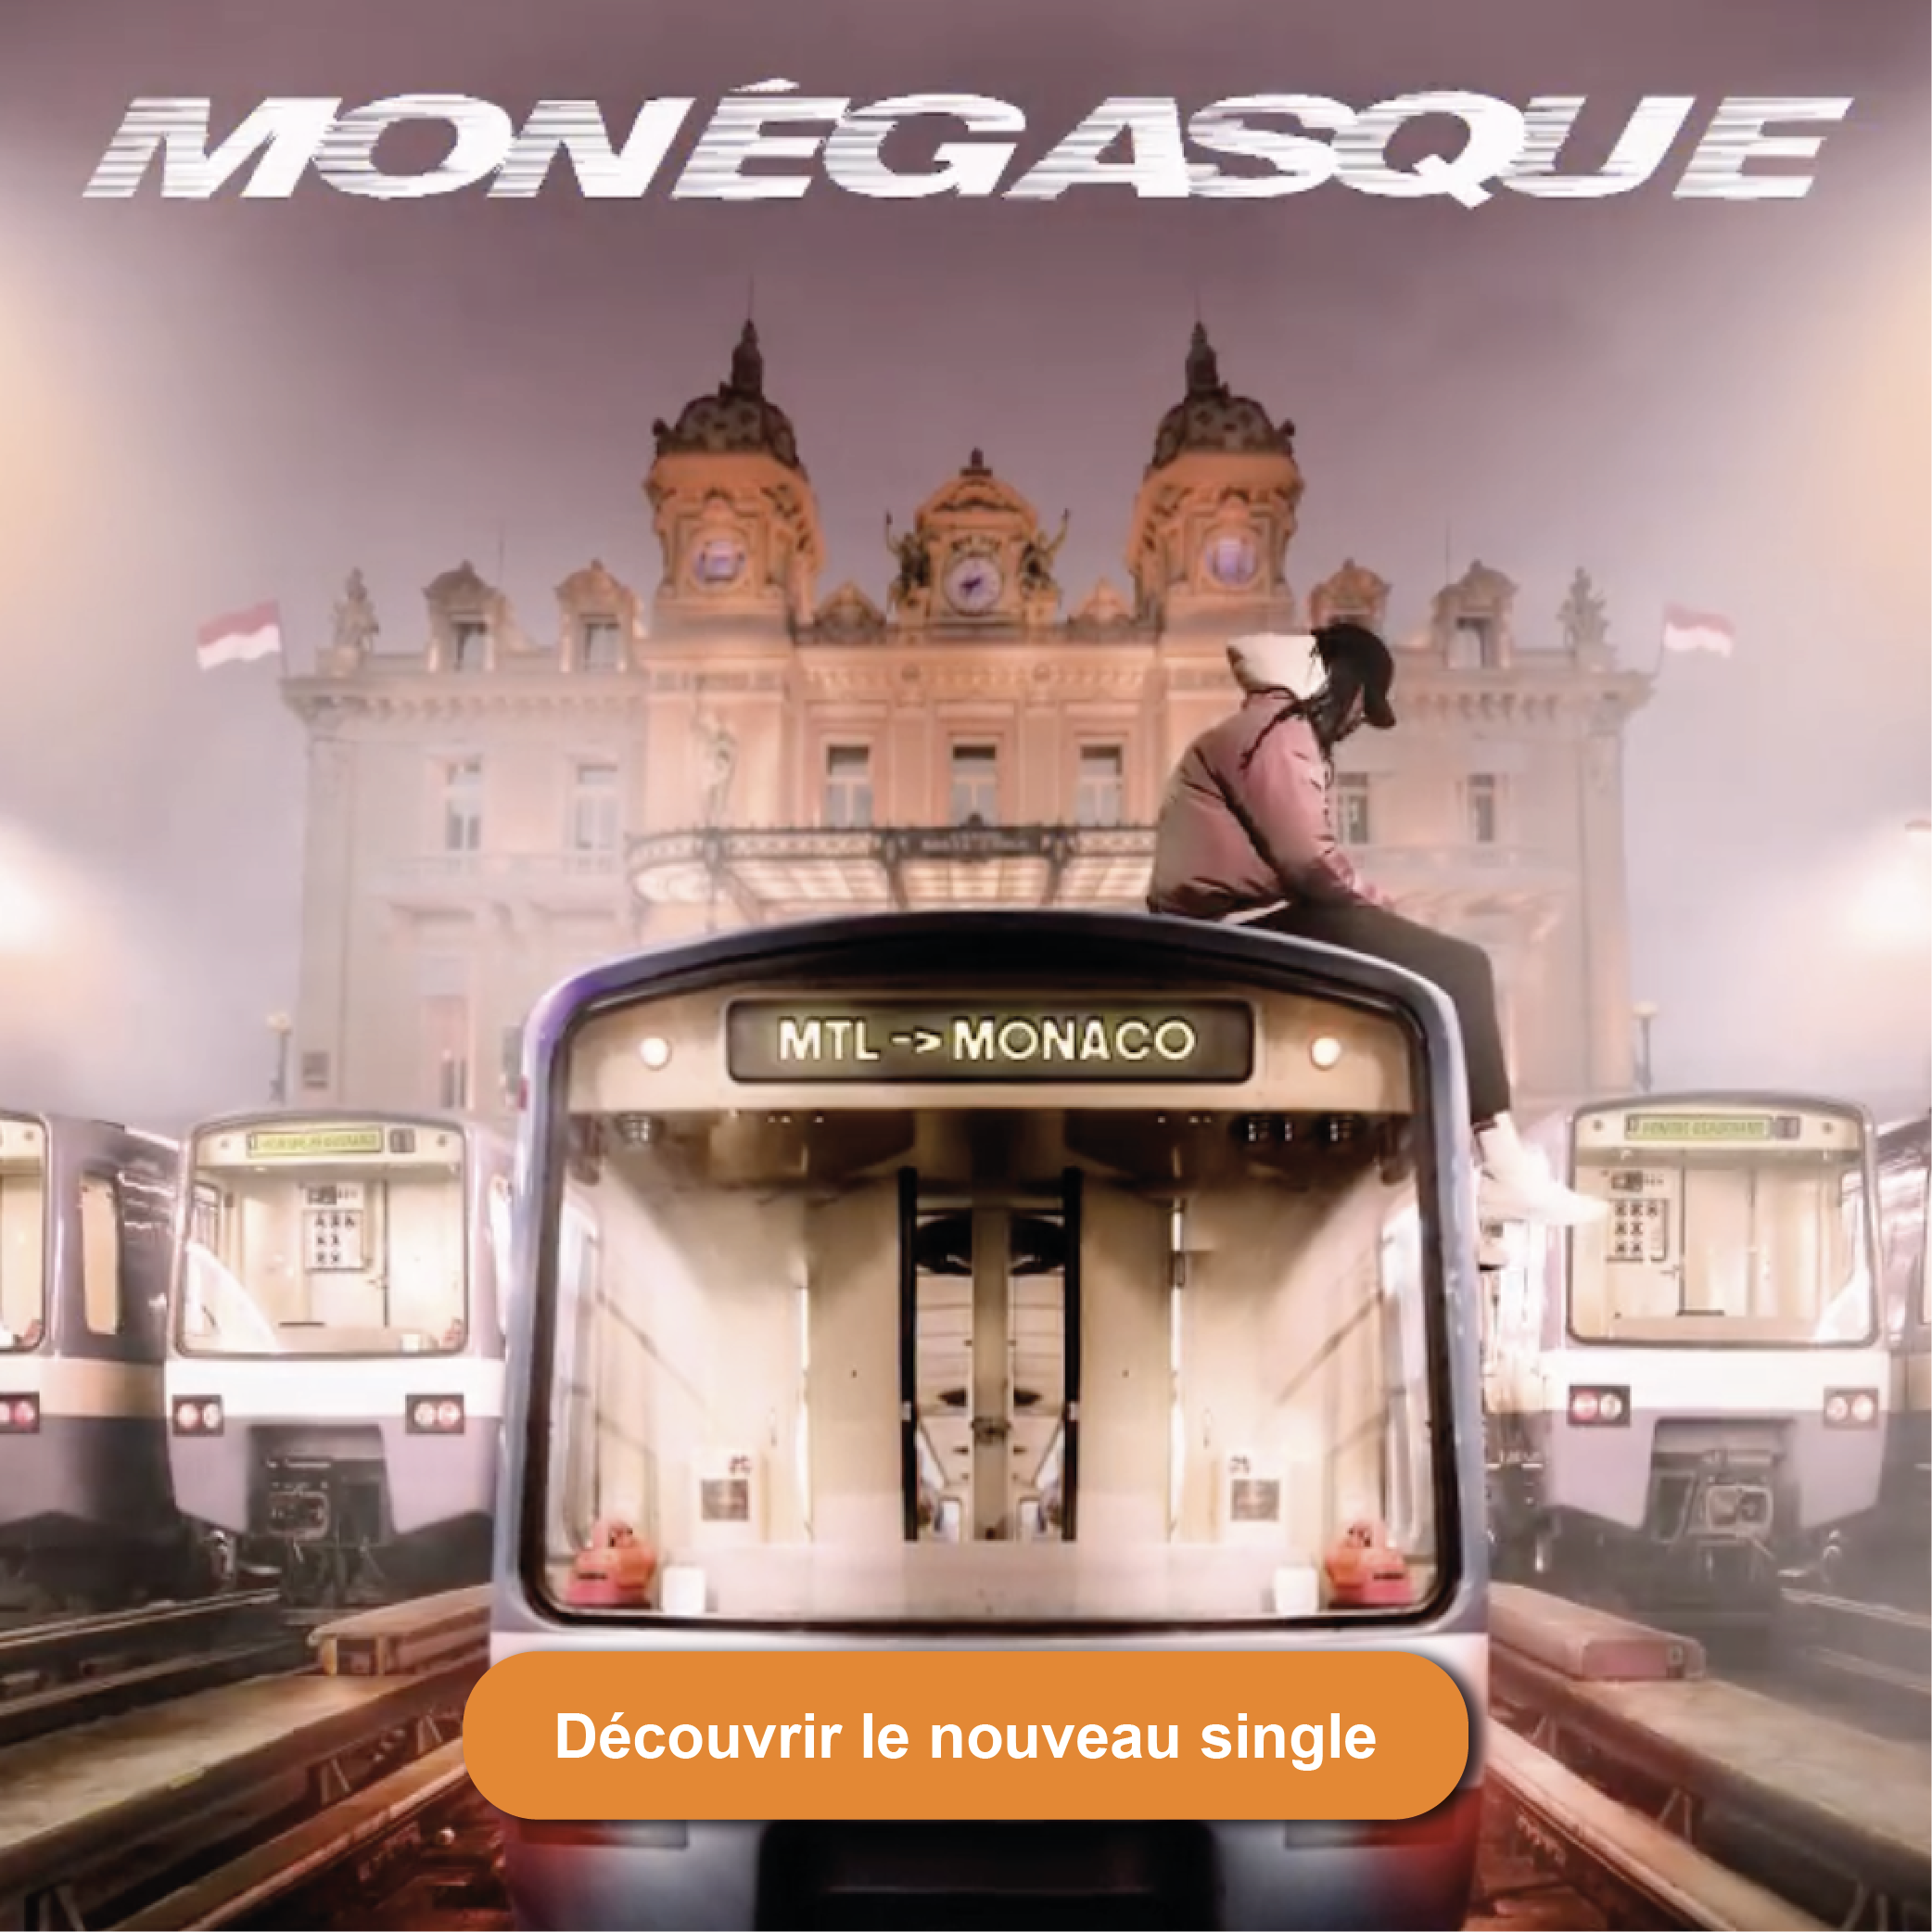 pop up Monegasque